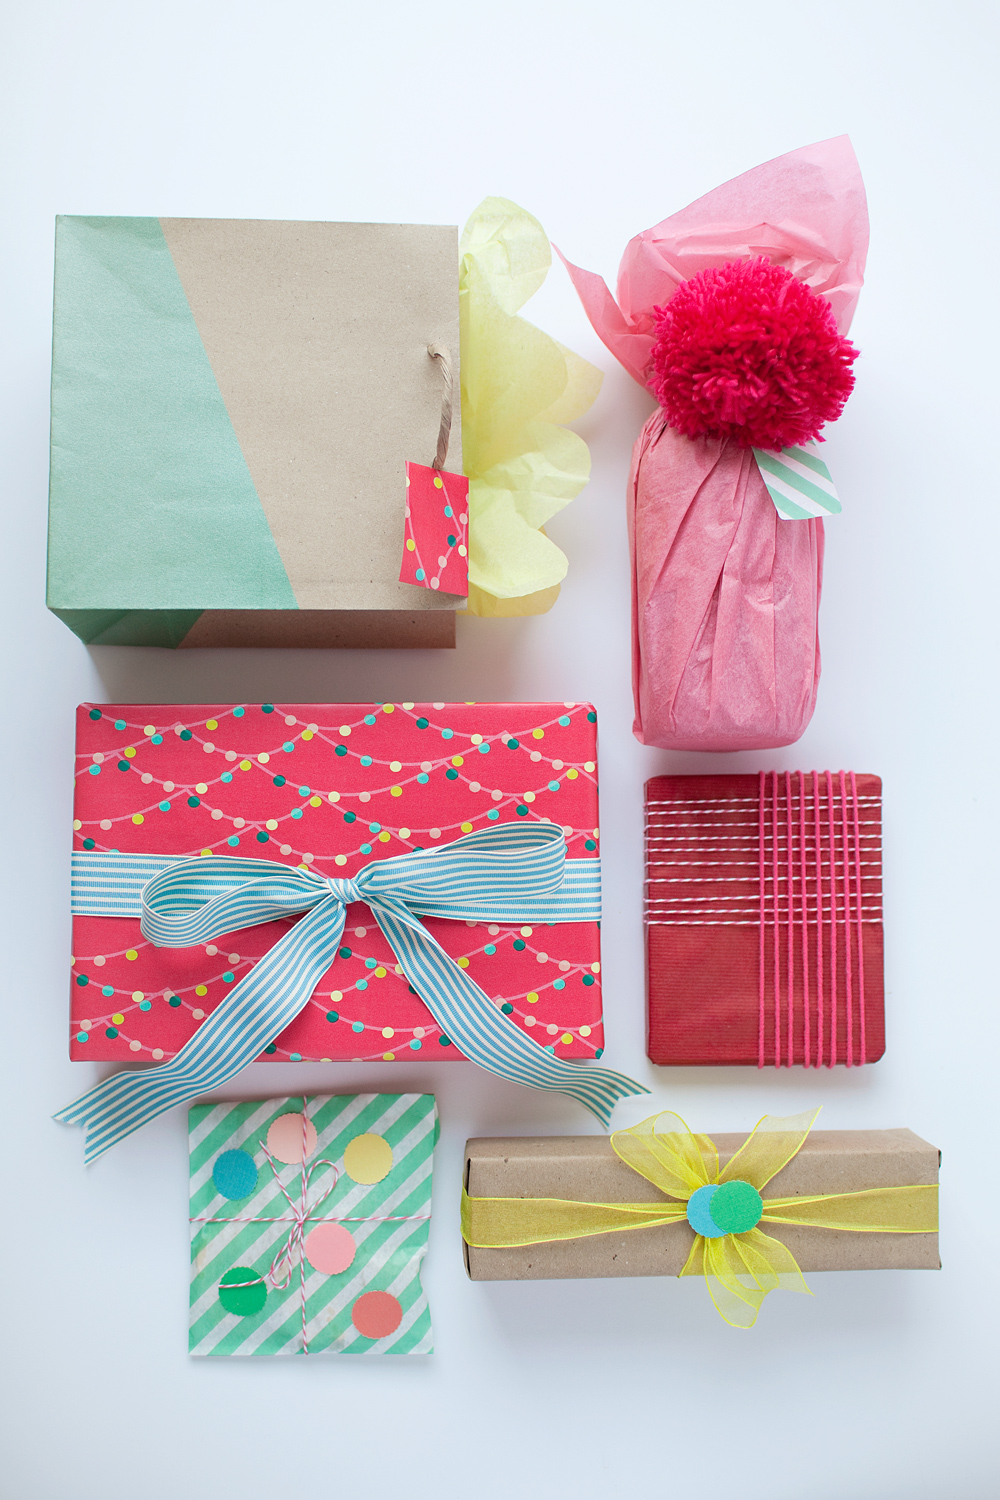 20 Creative Gift Wrapping Ideas For Christmas - Hey Fitzy